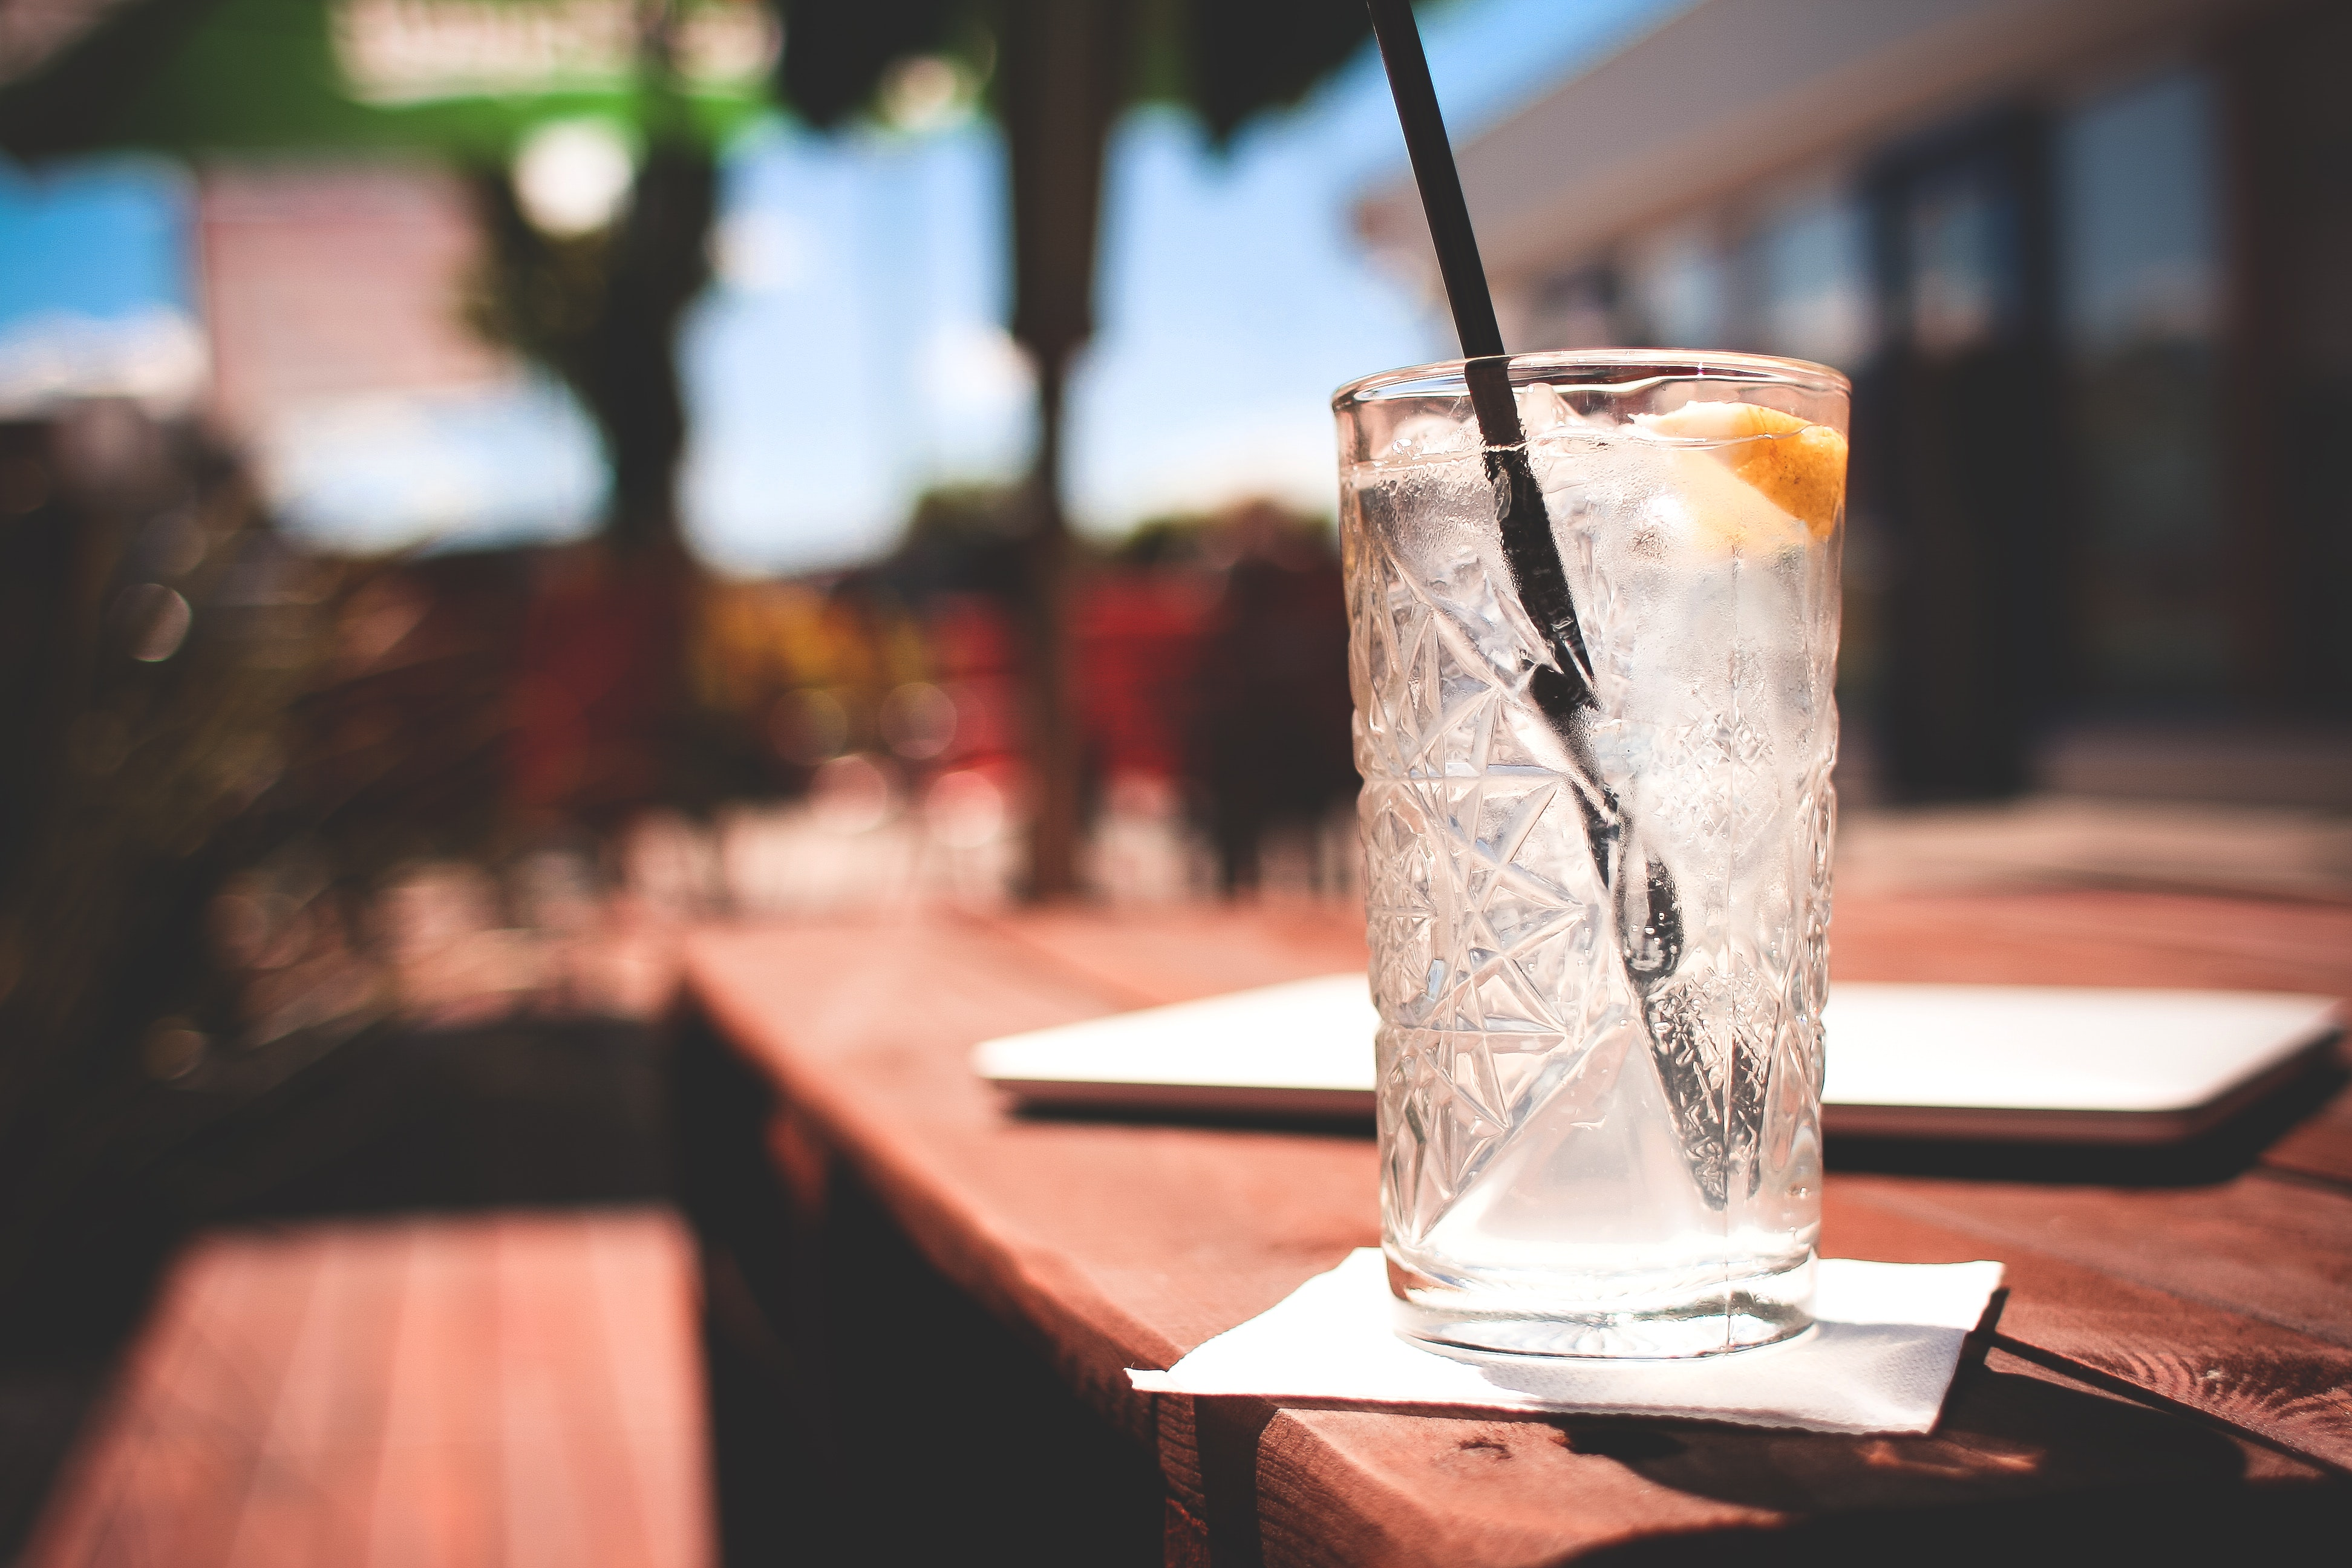 Clear Drinking Glass, Alcohol, Lemon, Thirsty, Table, HQ Photo